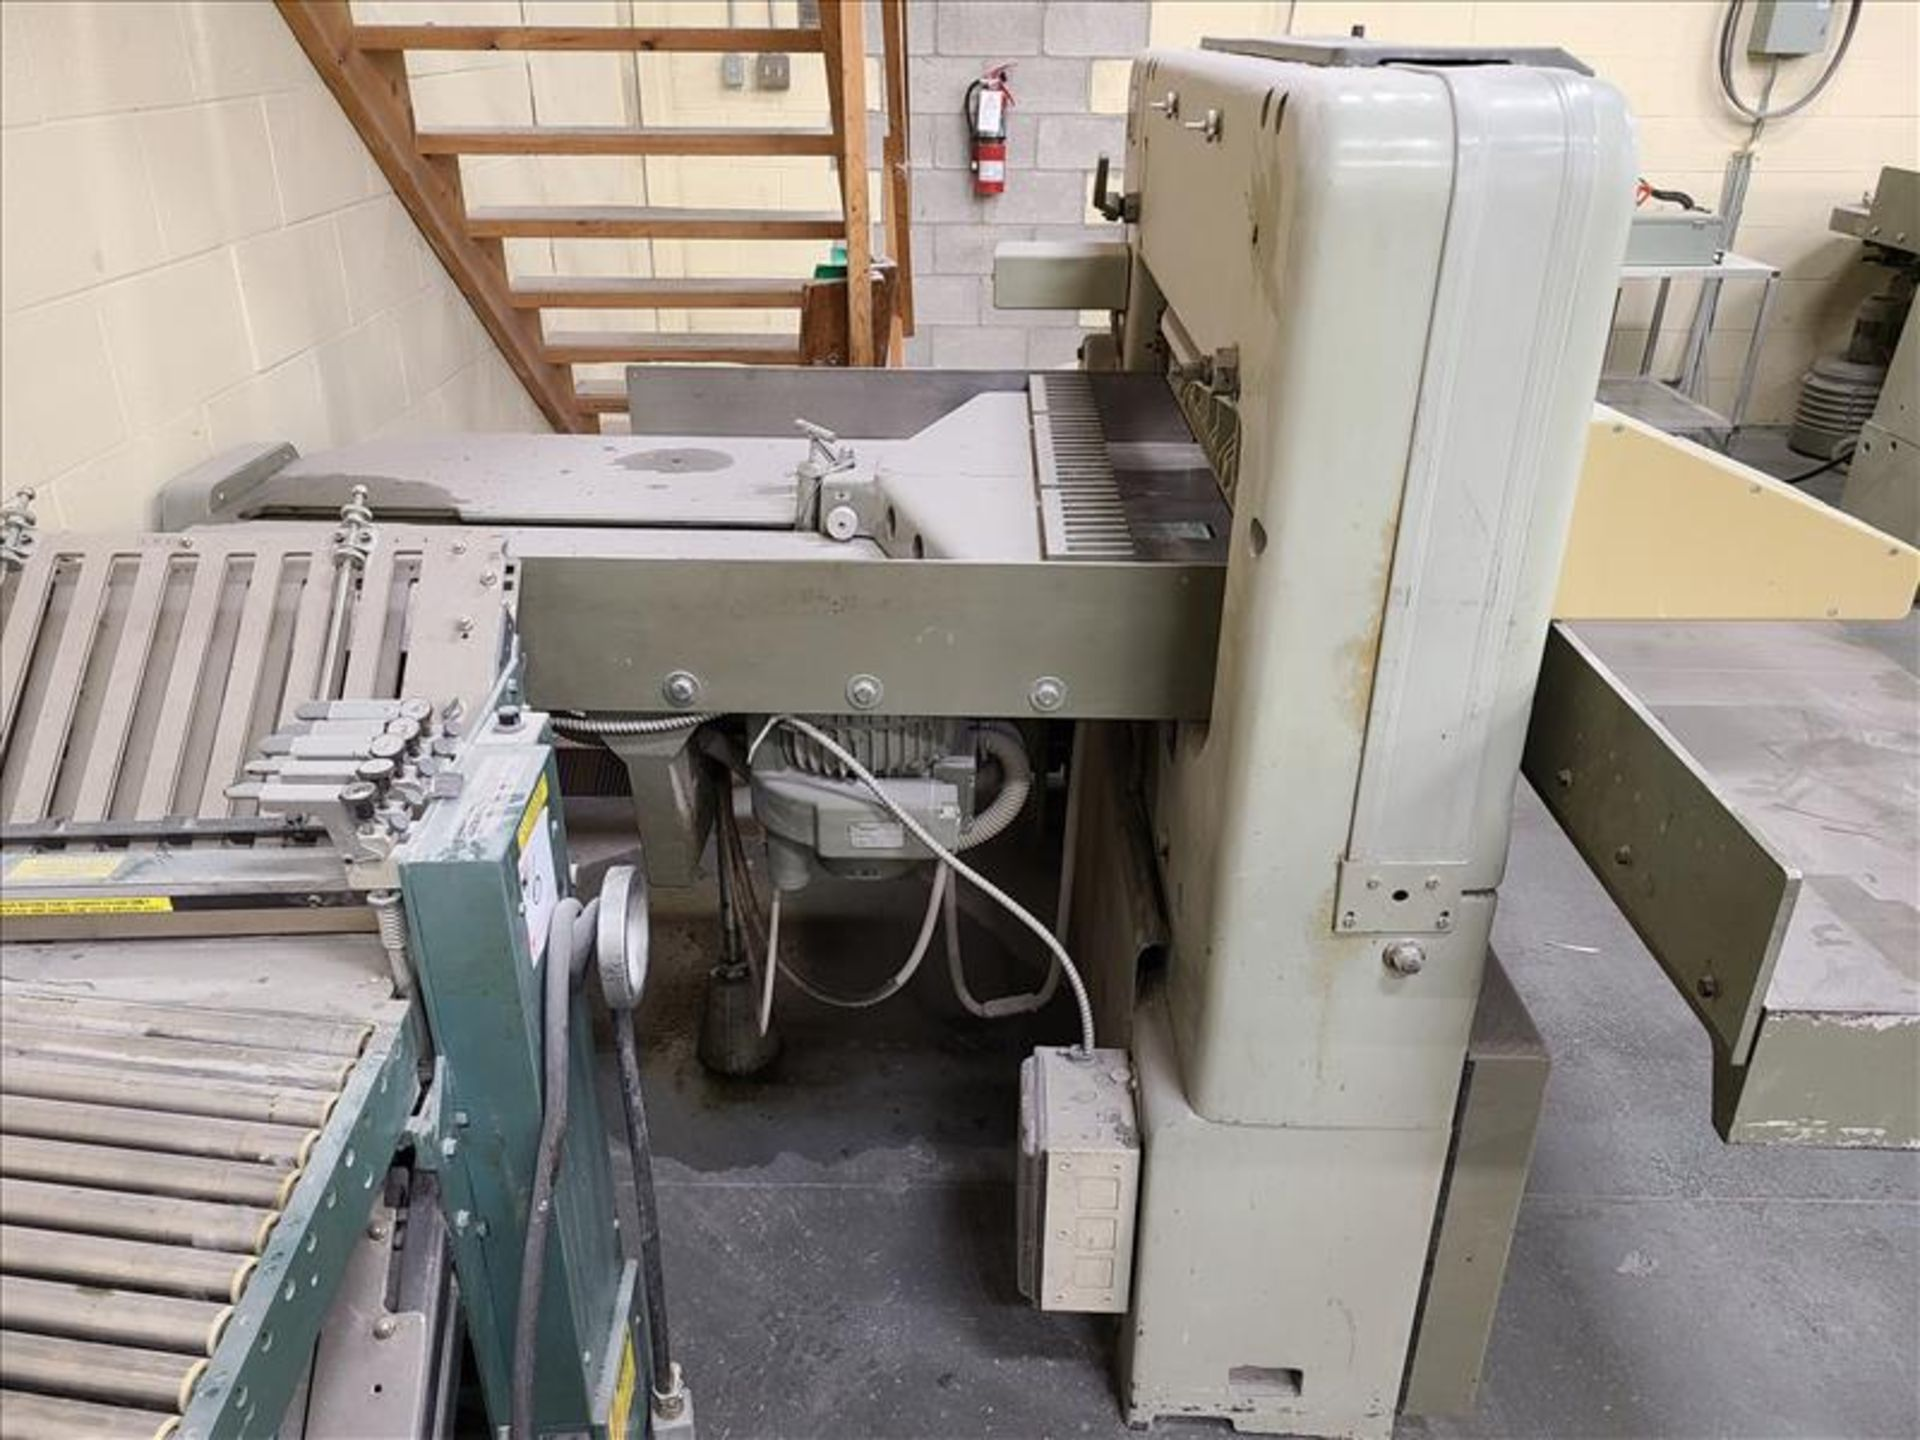 Polar Mohr Guillotine, model 92EM, S/N. 5611525, w/ 3' infeed, 220V, 19.5 amps, 3 Phase - Image 2 of 3